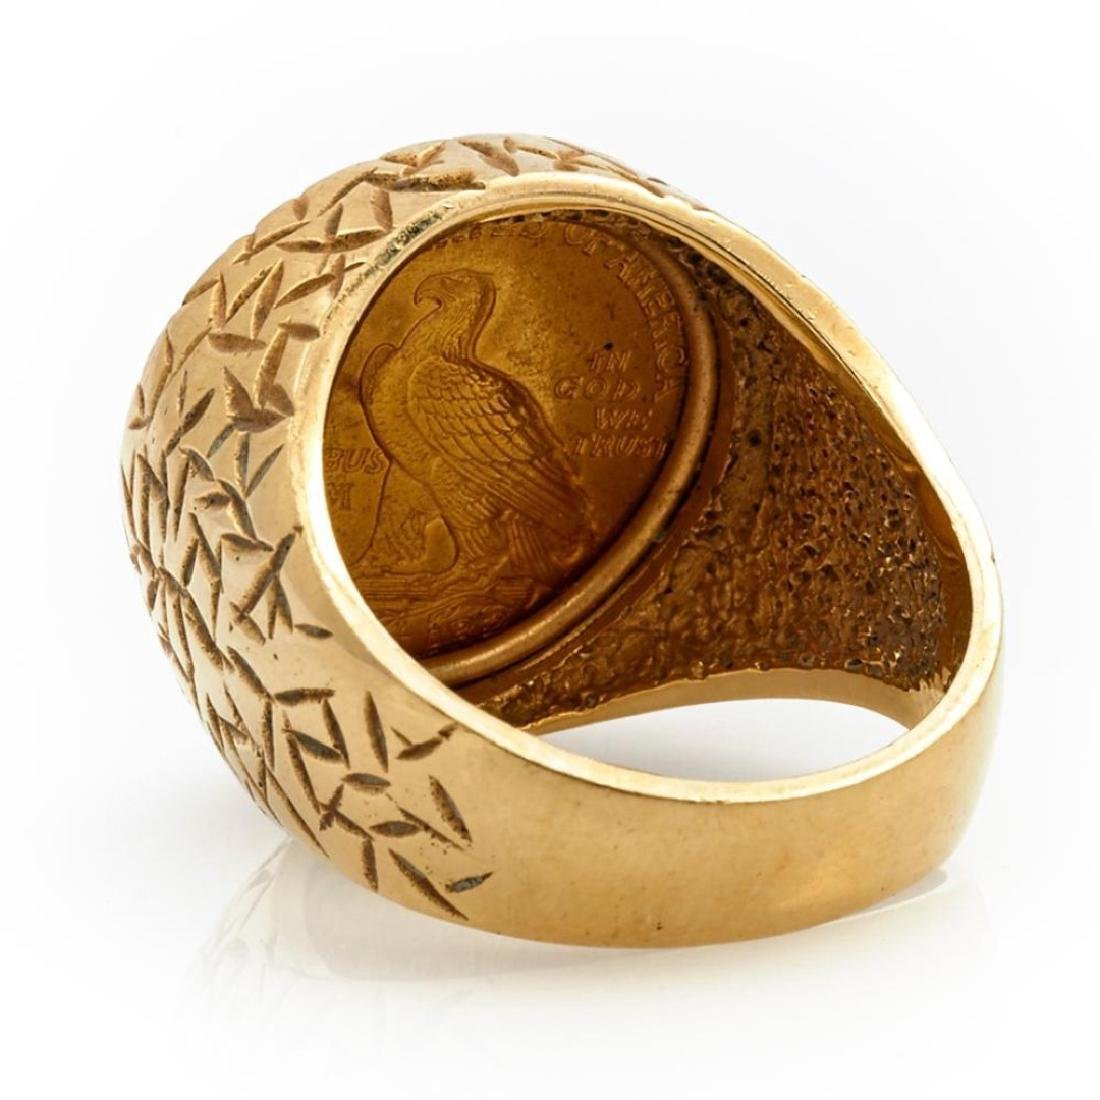 Gold coin and 14k gold ring - 3